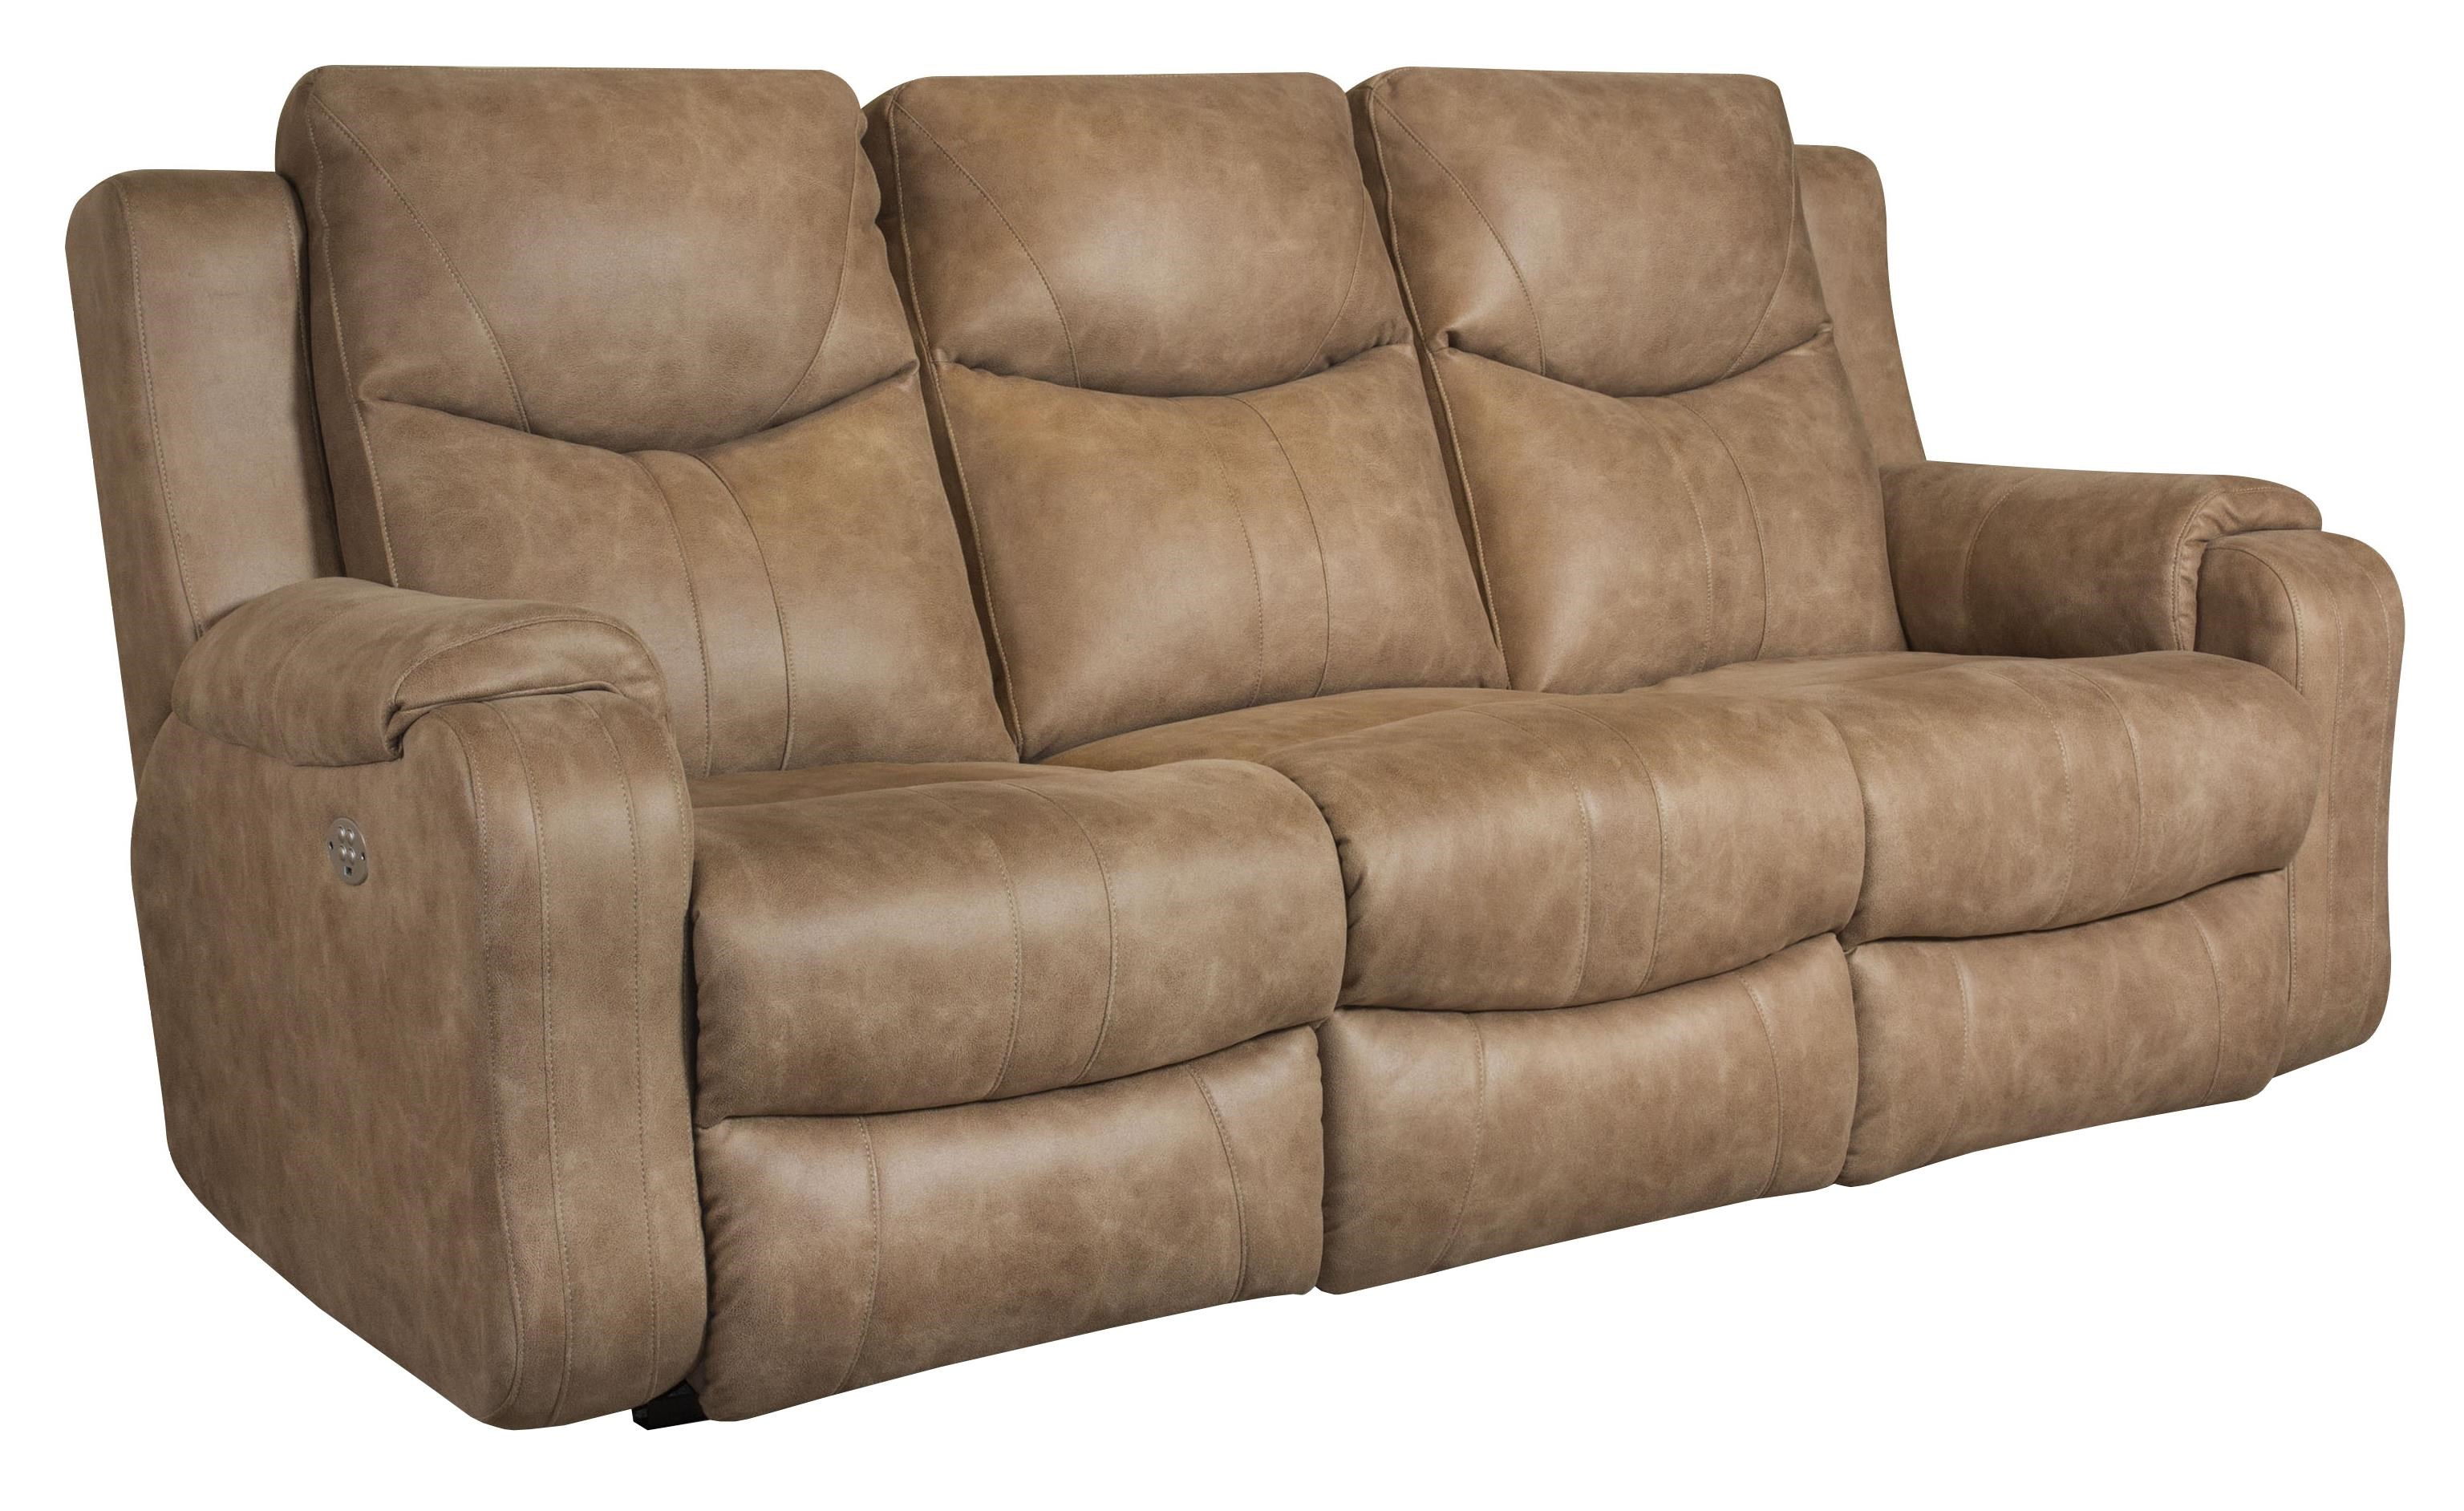 Southern Motion Marvel Double Reclining Sofa with Power Headrests - Colderu0026#39;s Furniture and ...